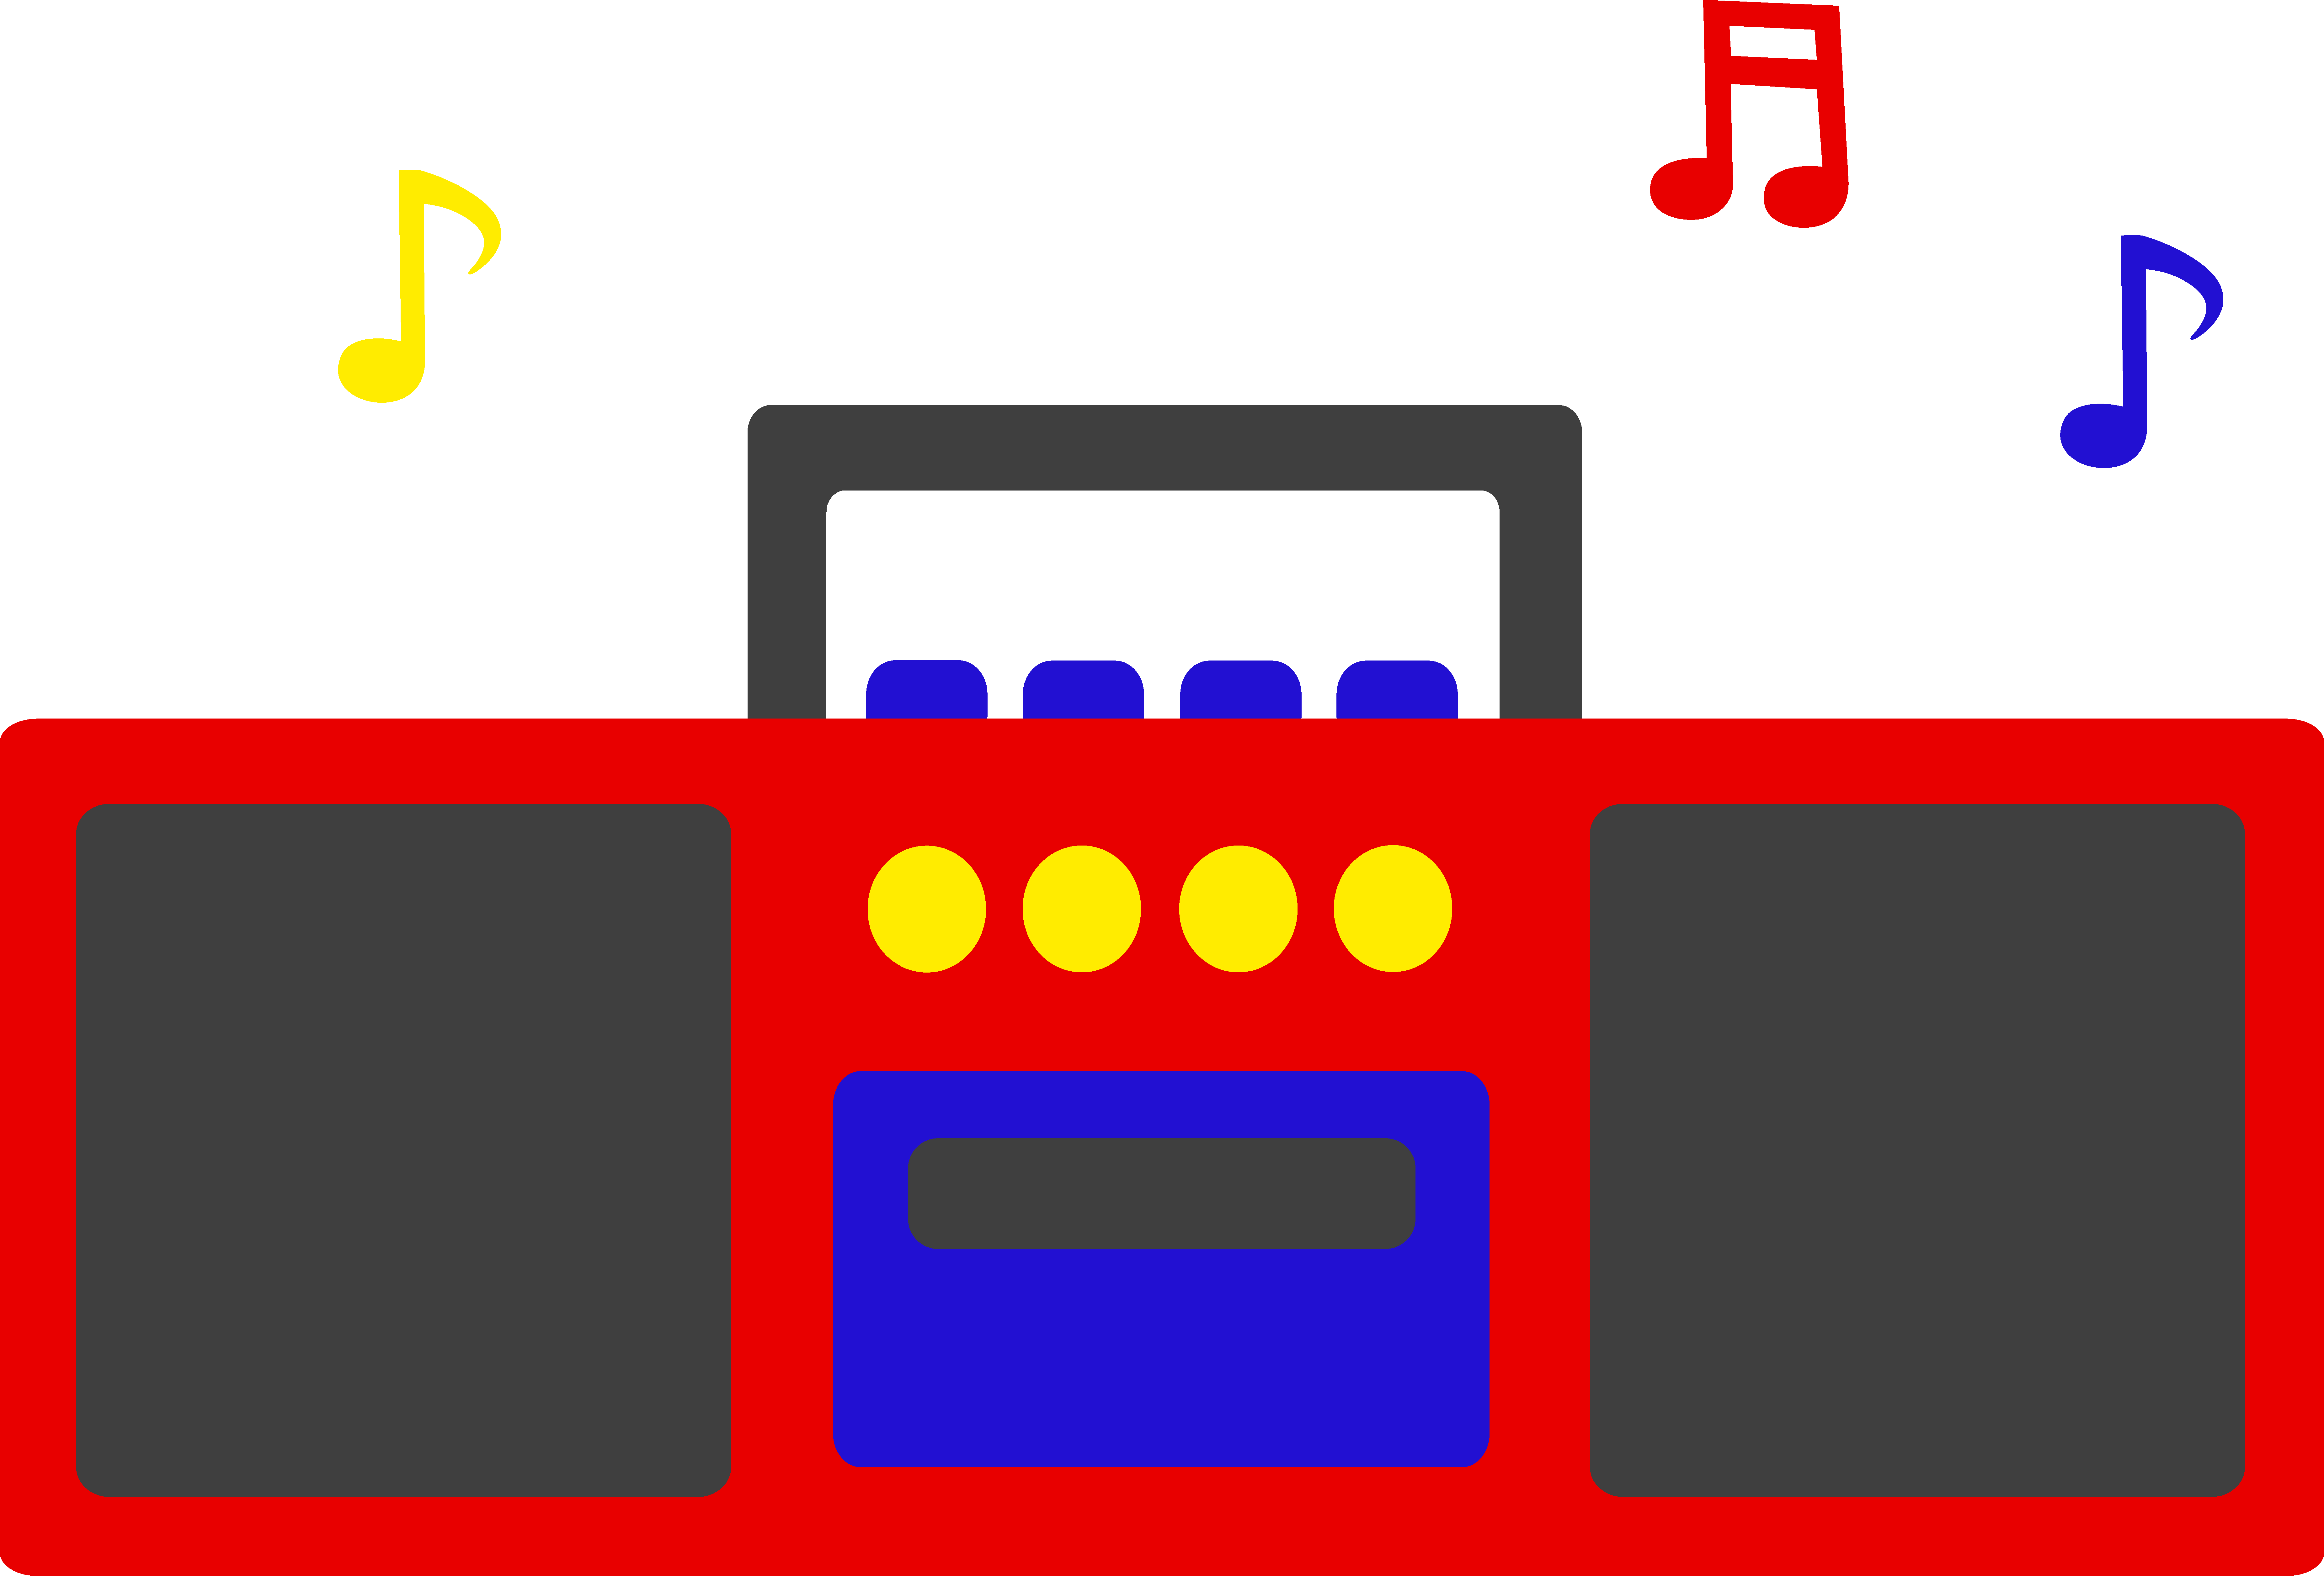 Free radio cliparts download. Cassette clipart picture freeuse stock